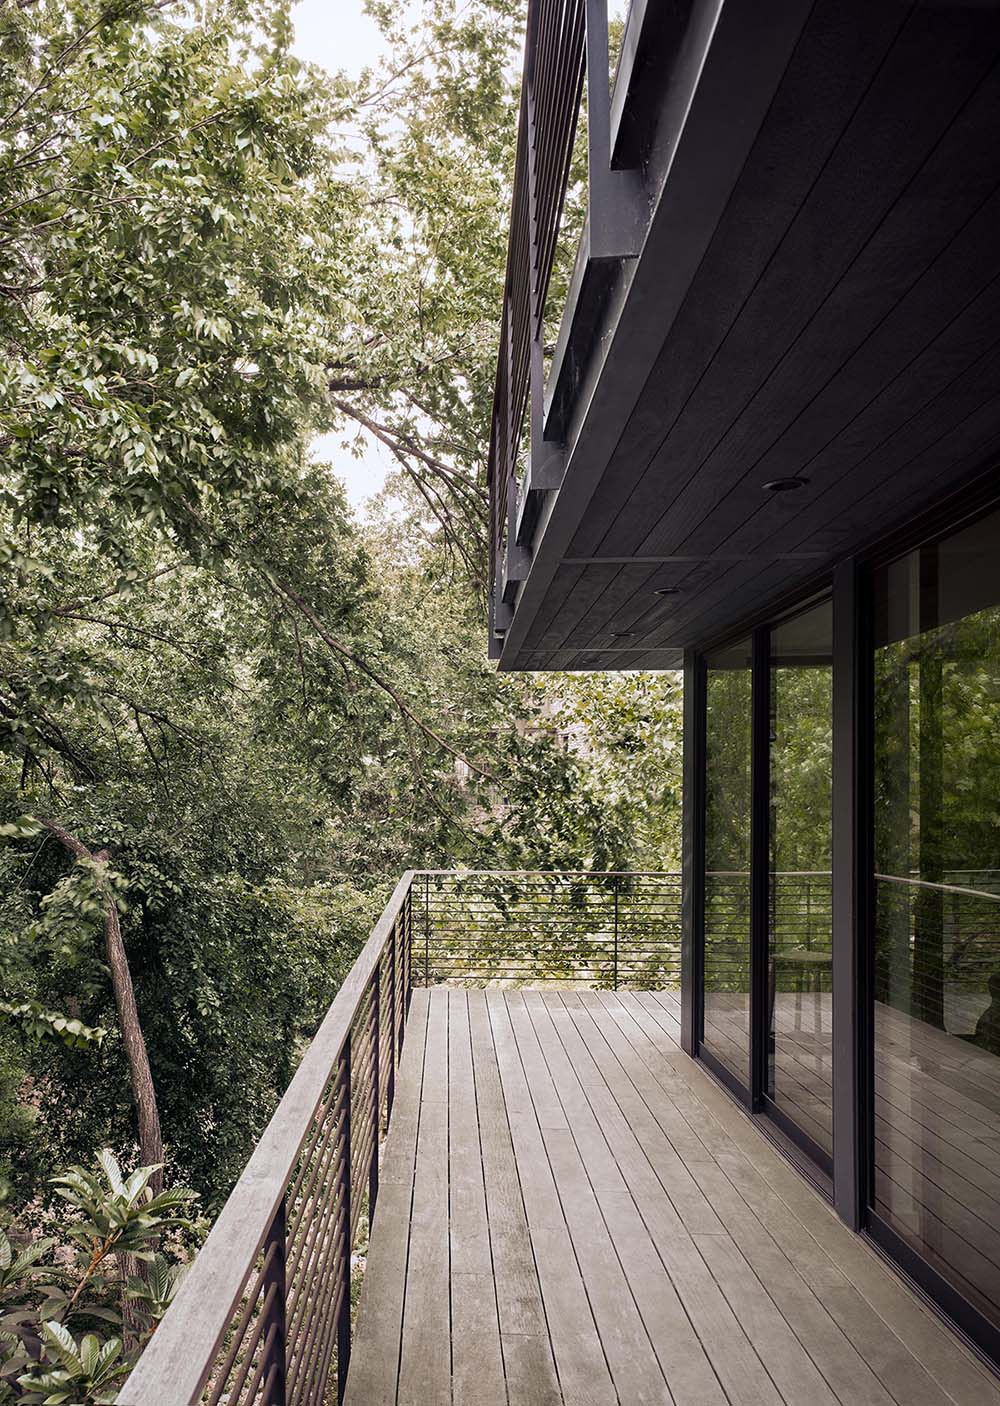 A wrap-around deck provides views of the trees, with a staircase the allows for easy access around the property.